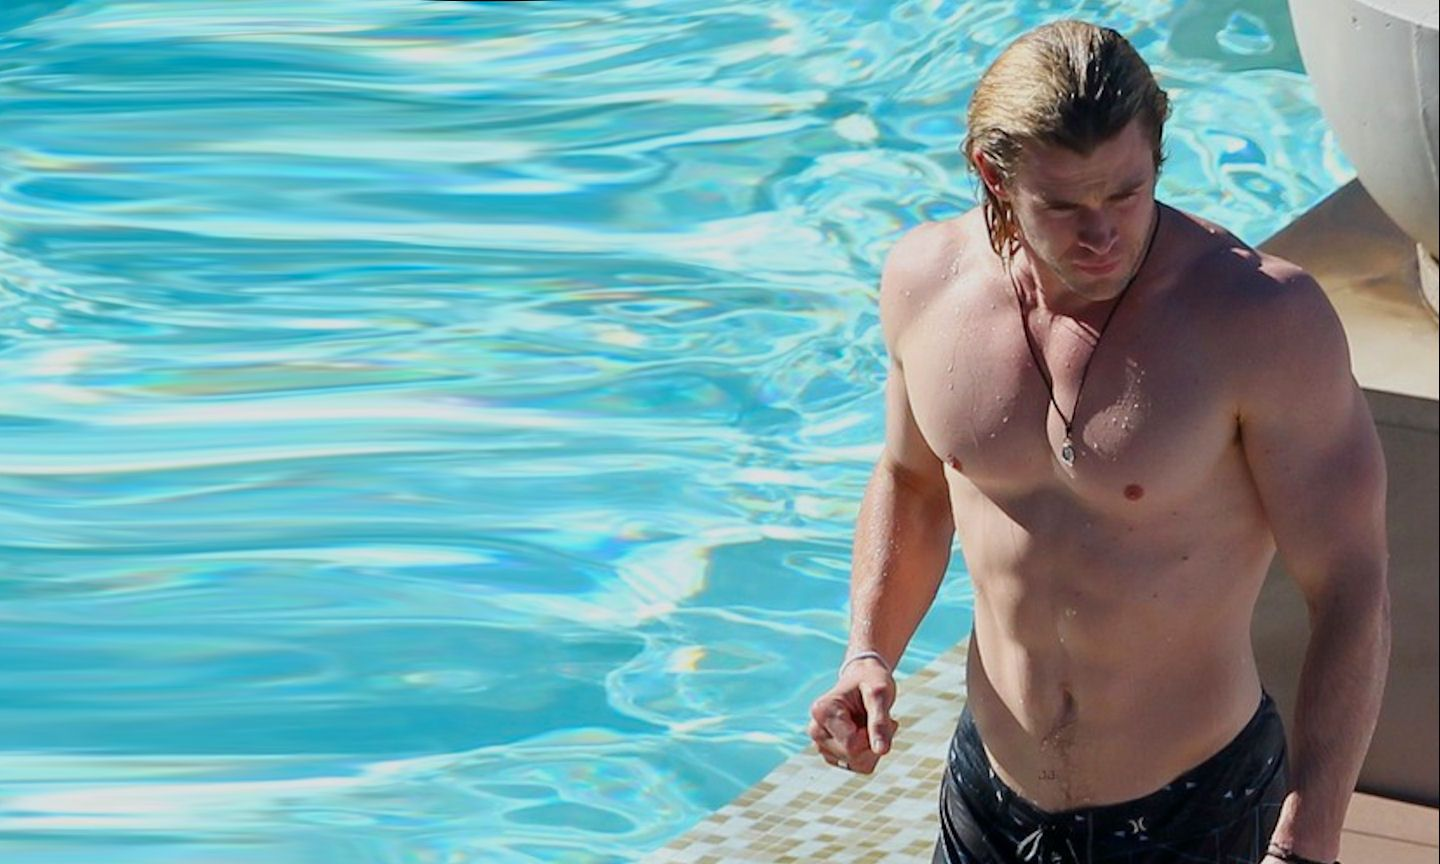 Fotos de chris hemsworth desnudo 58